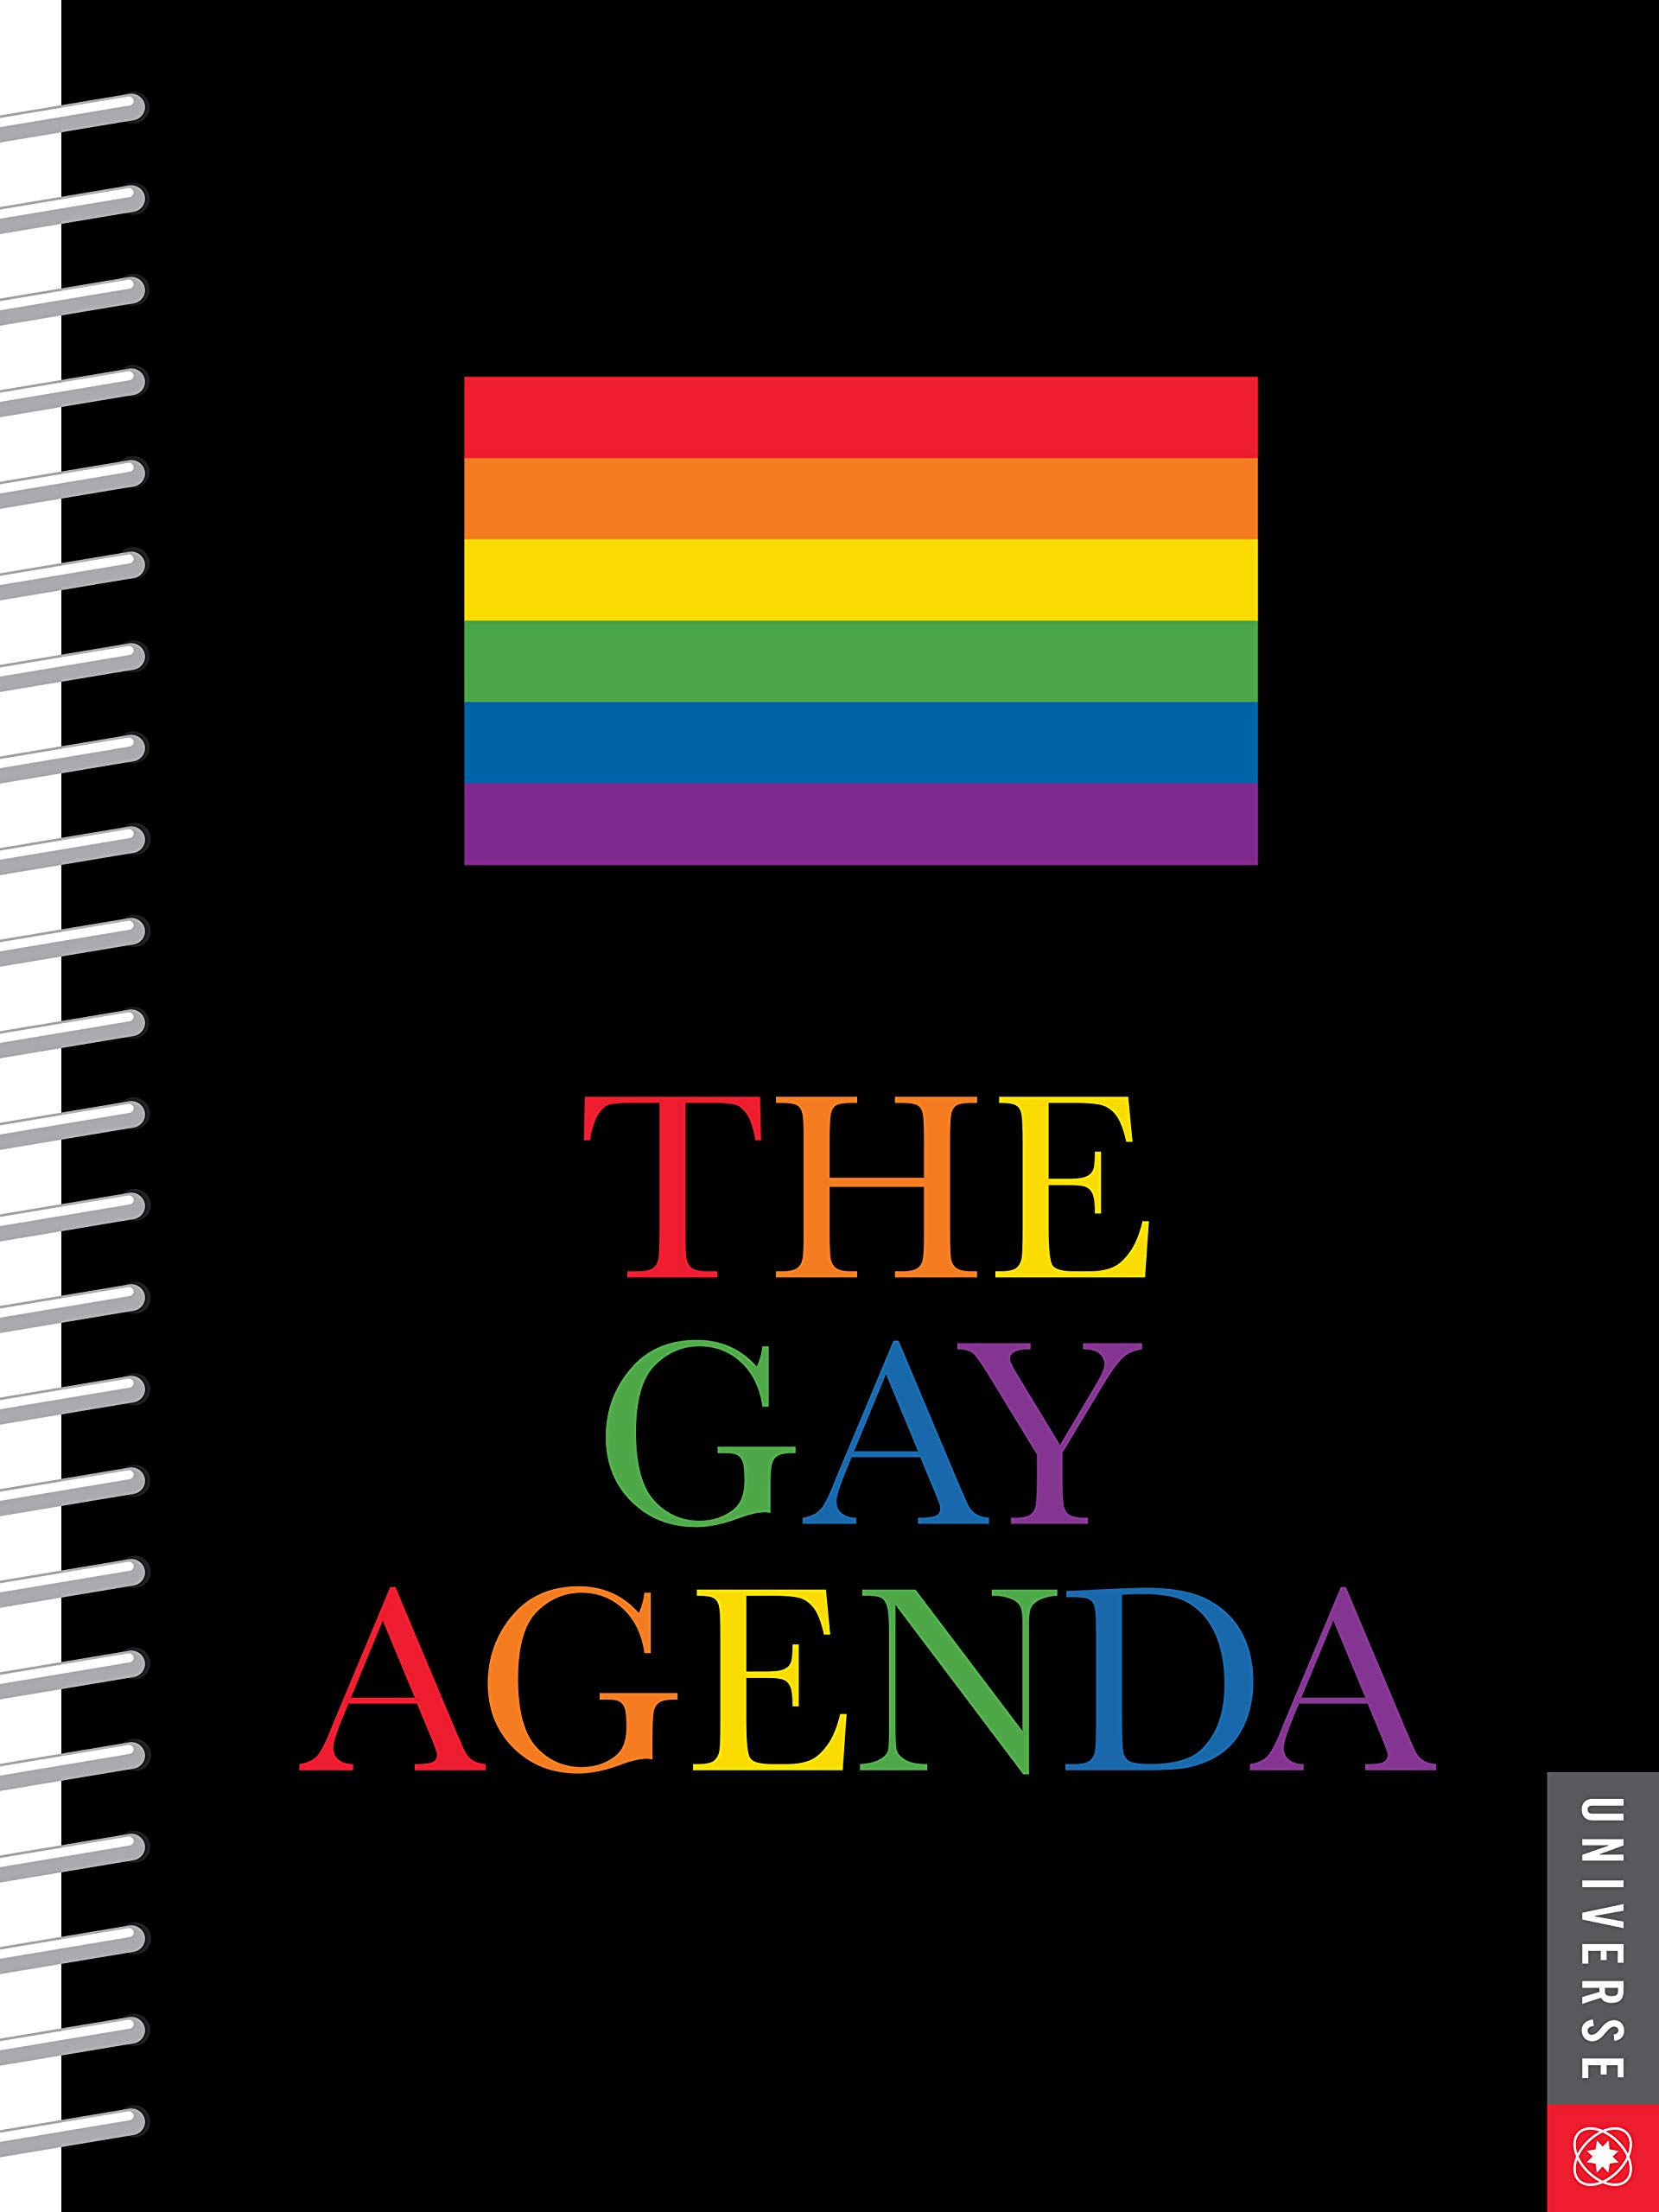 The Gay Agenda Undated Calendar: Amazon.es: Universe ...